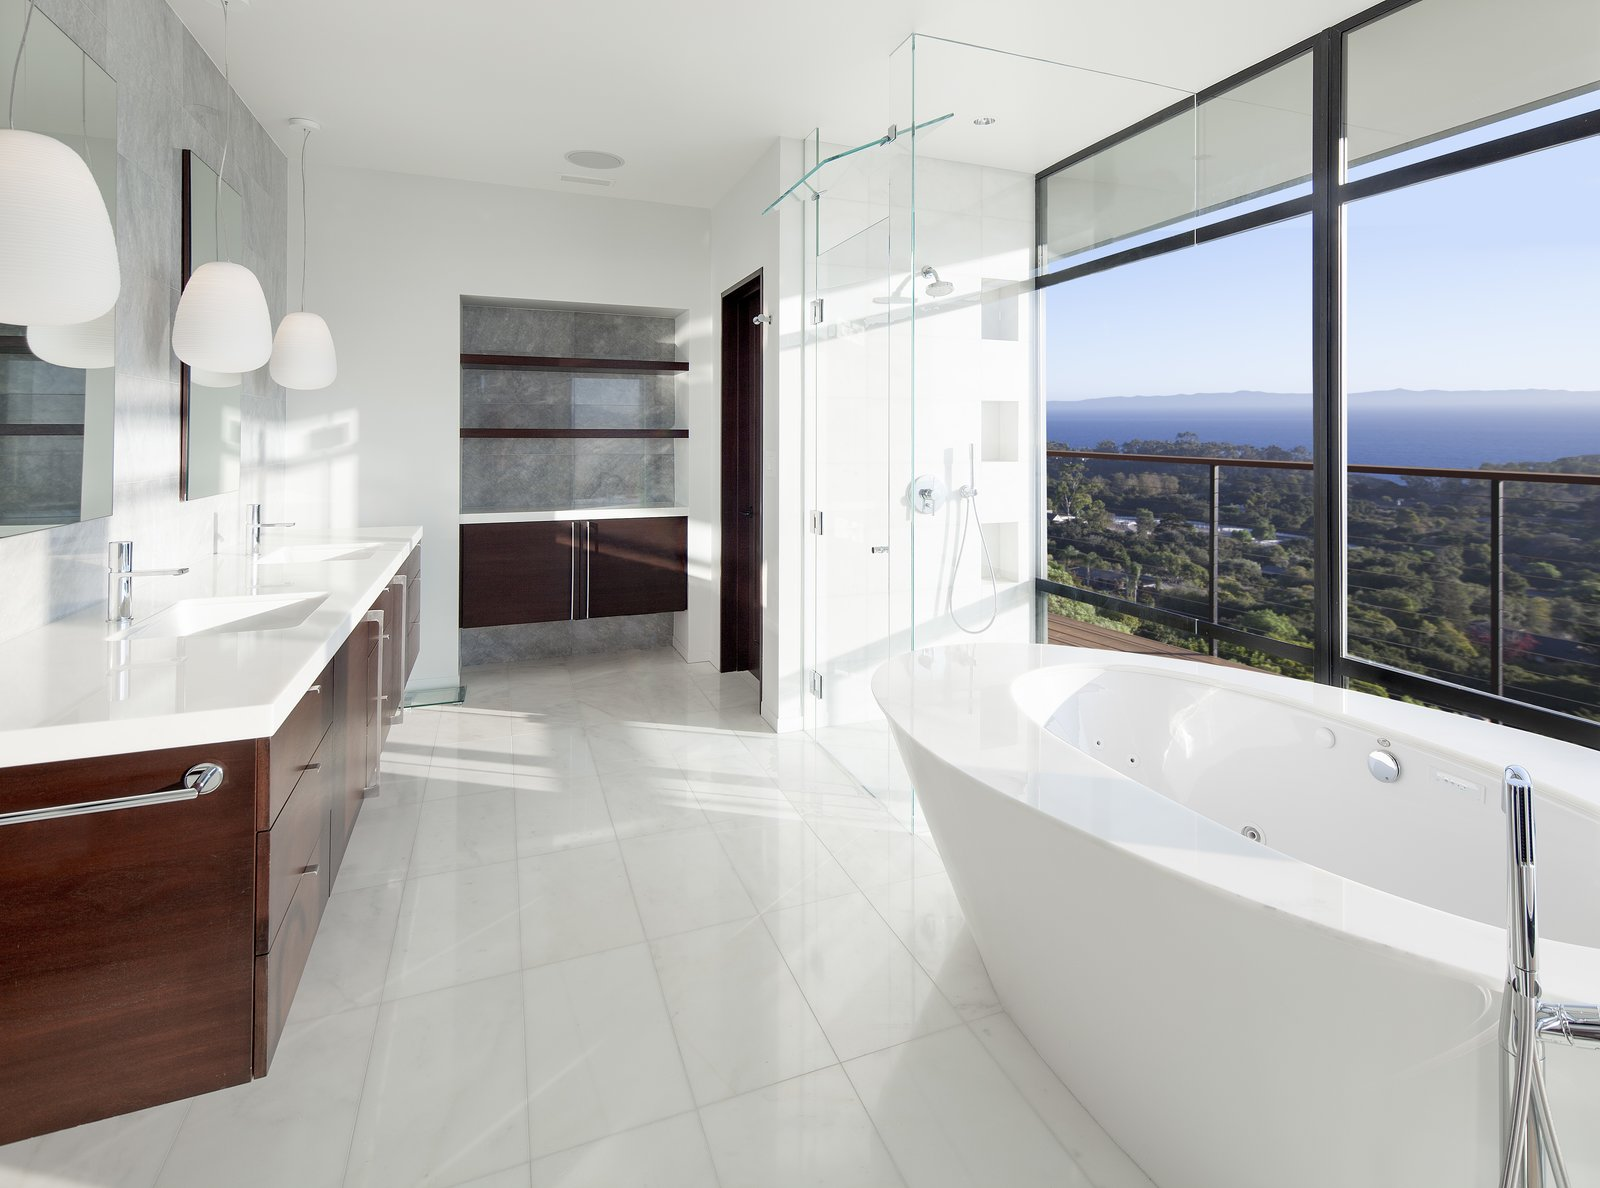 Bath Room, Marble Floor, Pendant Lighting, One Piece Toilet, Marble Counter, Recessed Lighting, Freestanding Tub, Soaking Tub, Whirlpool Tub, Open Shower, and Full Shower Electrochromic glass windows  Best Photos from Hope Ranch Residence